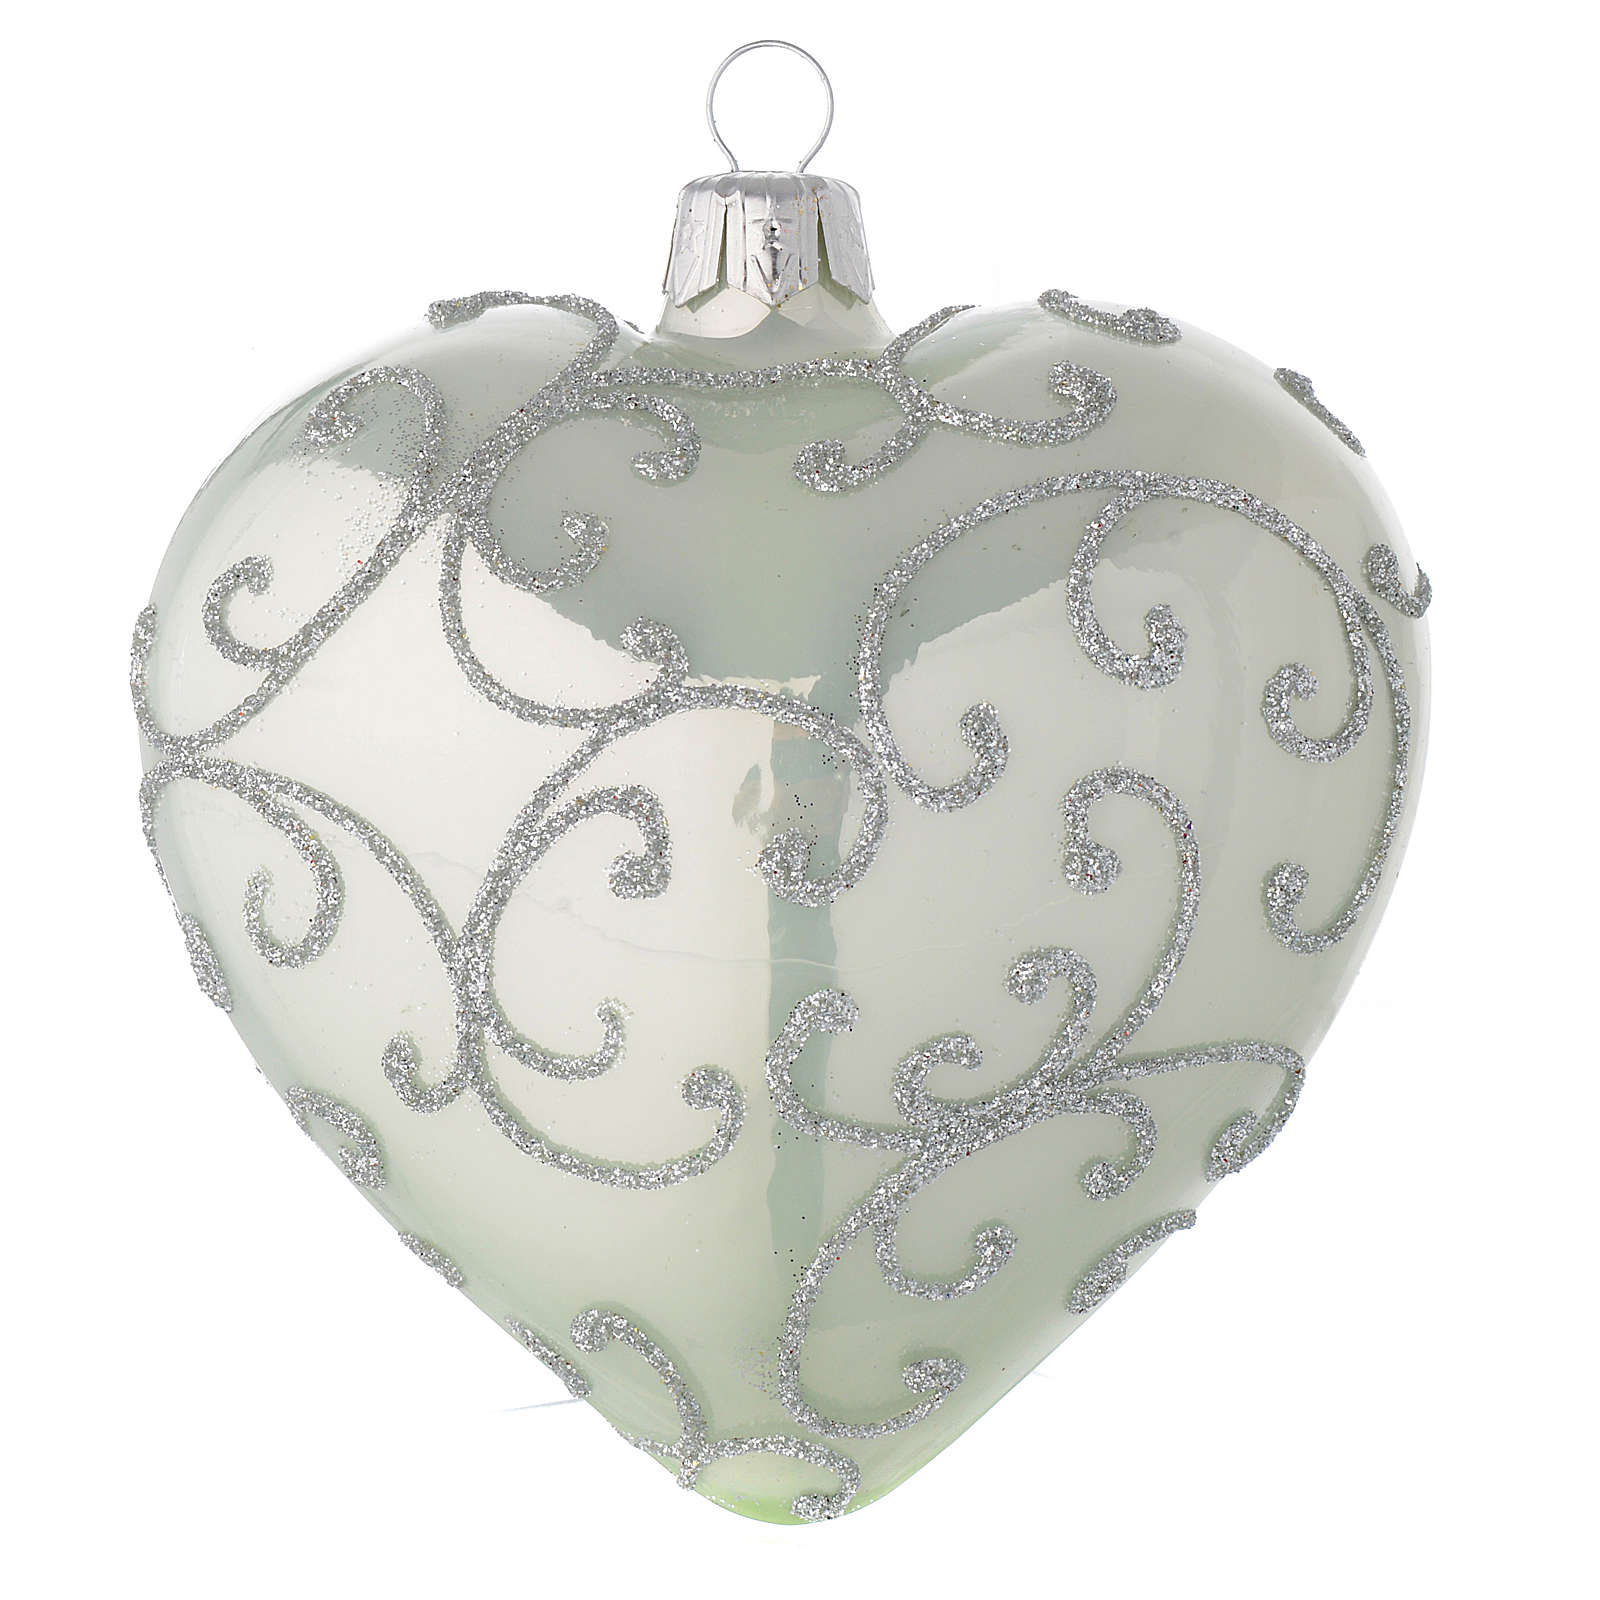 Heart Shaped Bauble in pale green blown glass with silver decoration 100mm 4